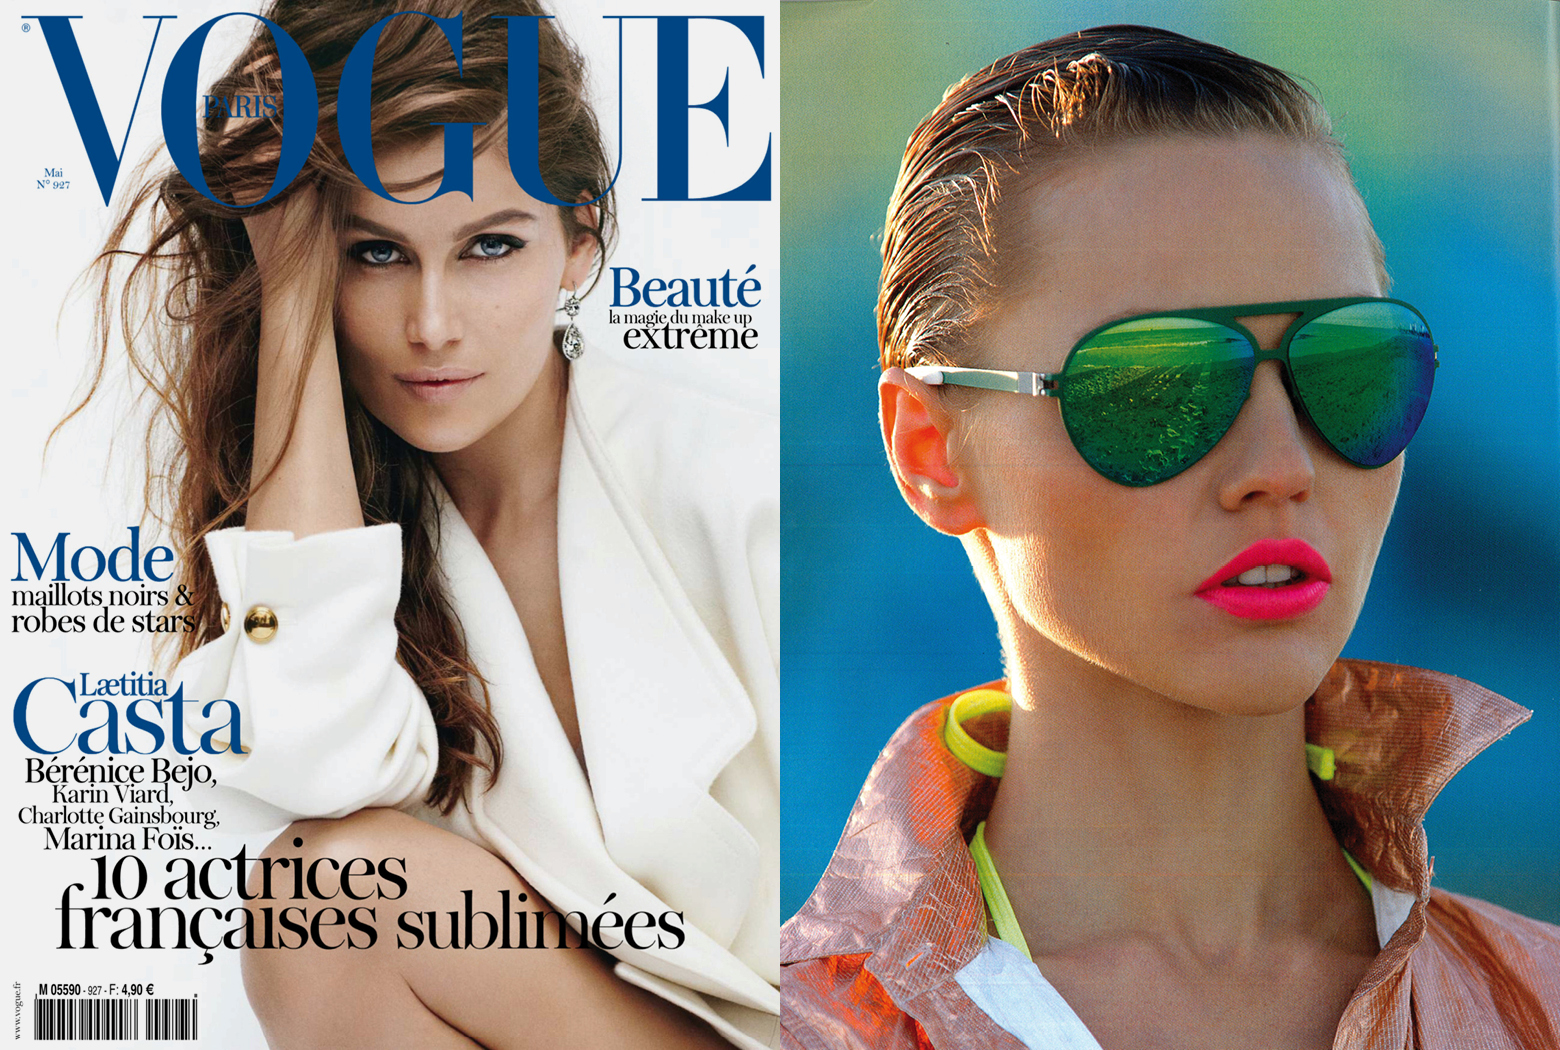 MYKITA Clipping Vogue France